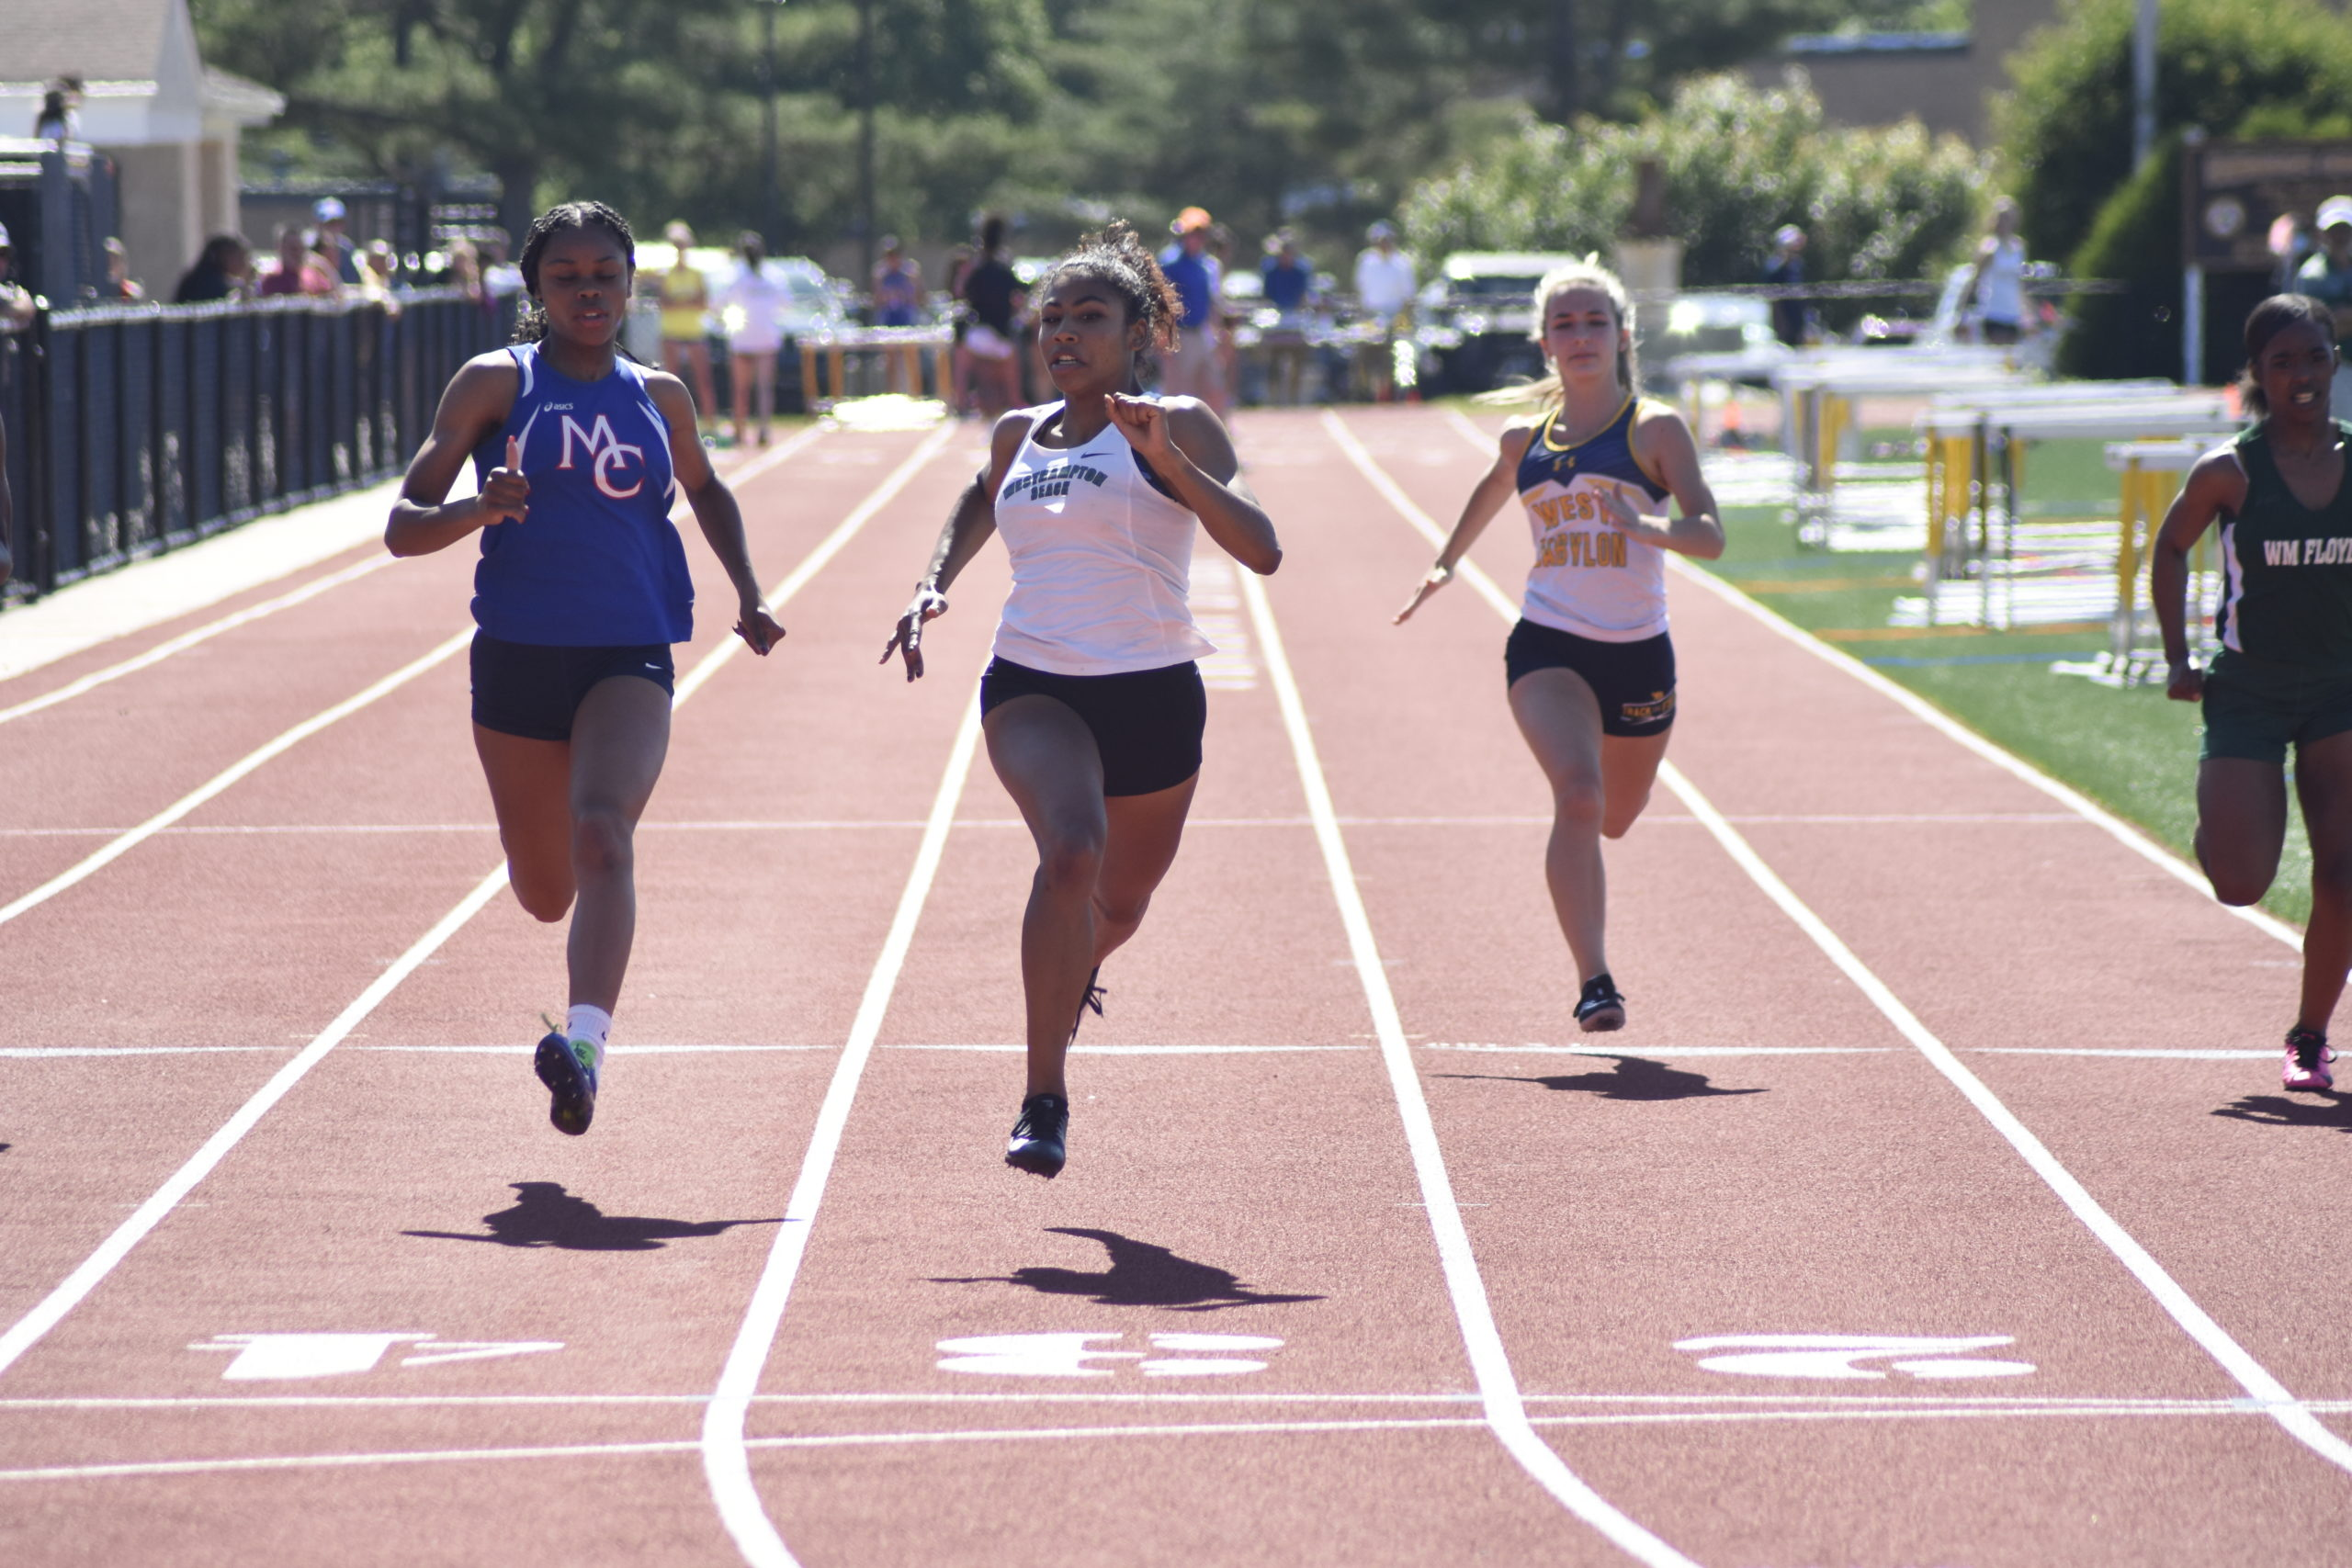 Westhampton Beach senior Oceane Ode was a double champion in both the 100- and 200-meter dashes.